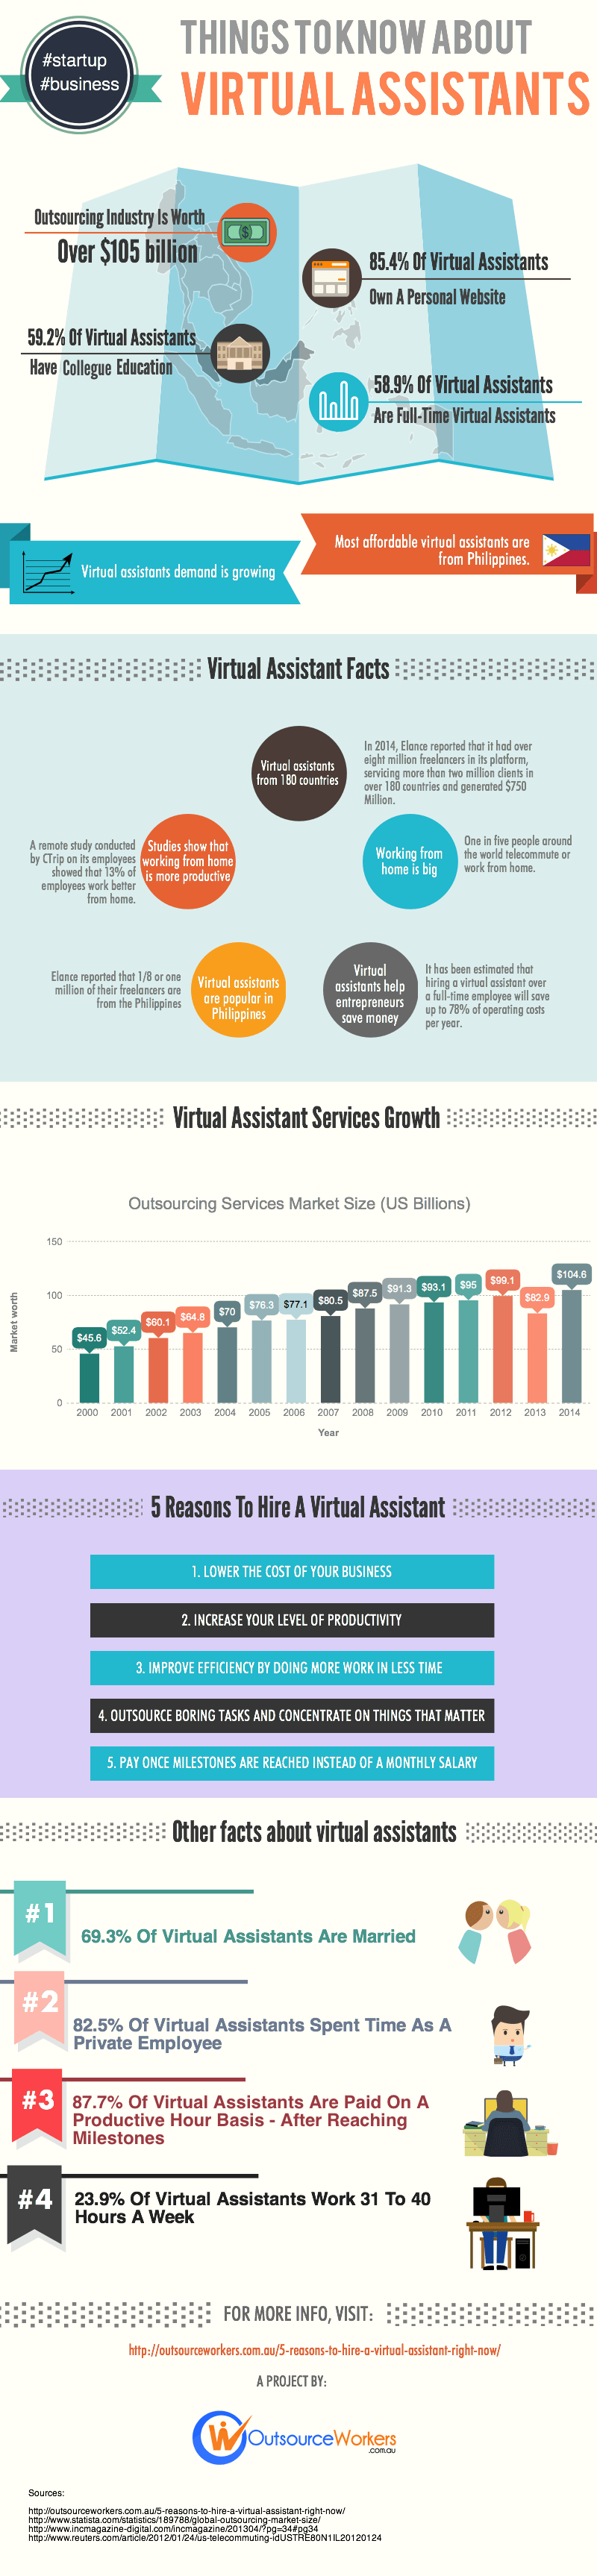 virtual-assistants-infographic-by-OutsourceWorkers1